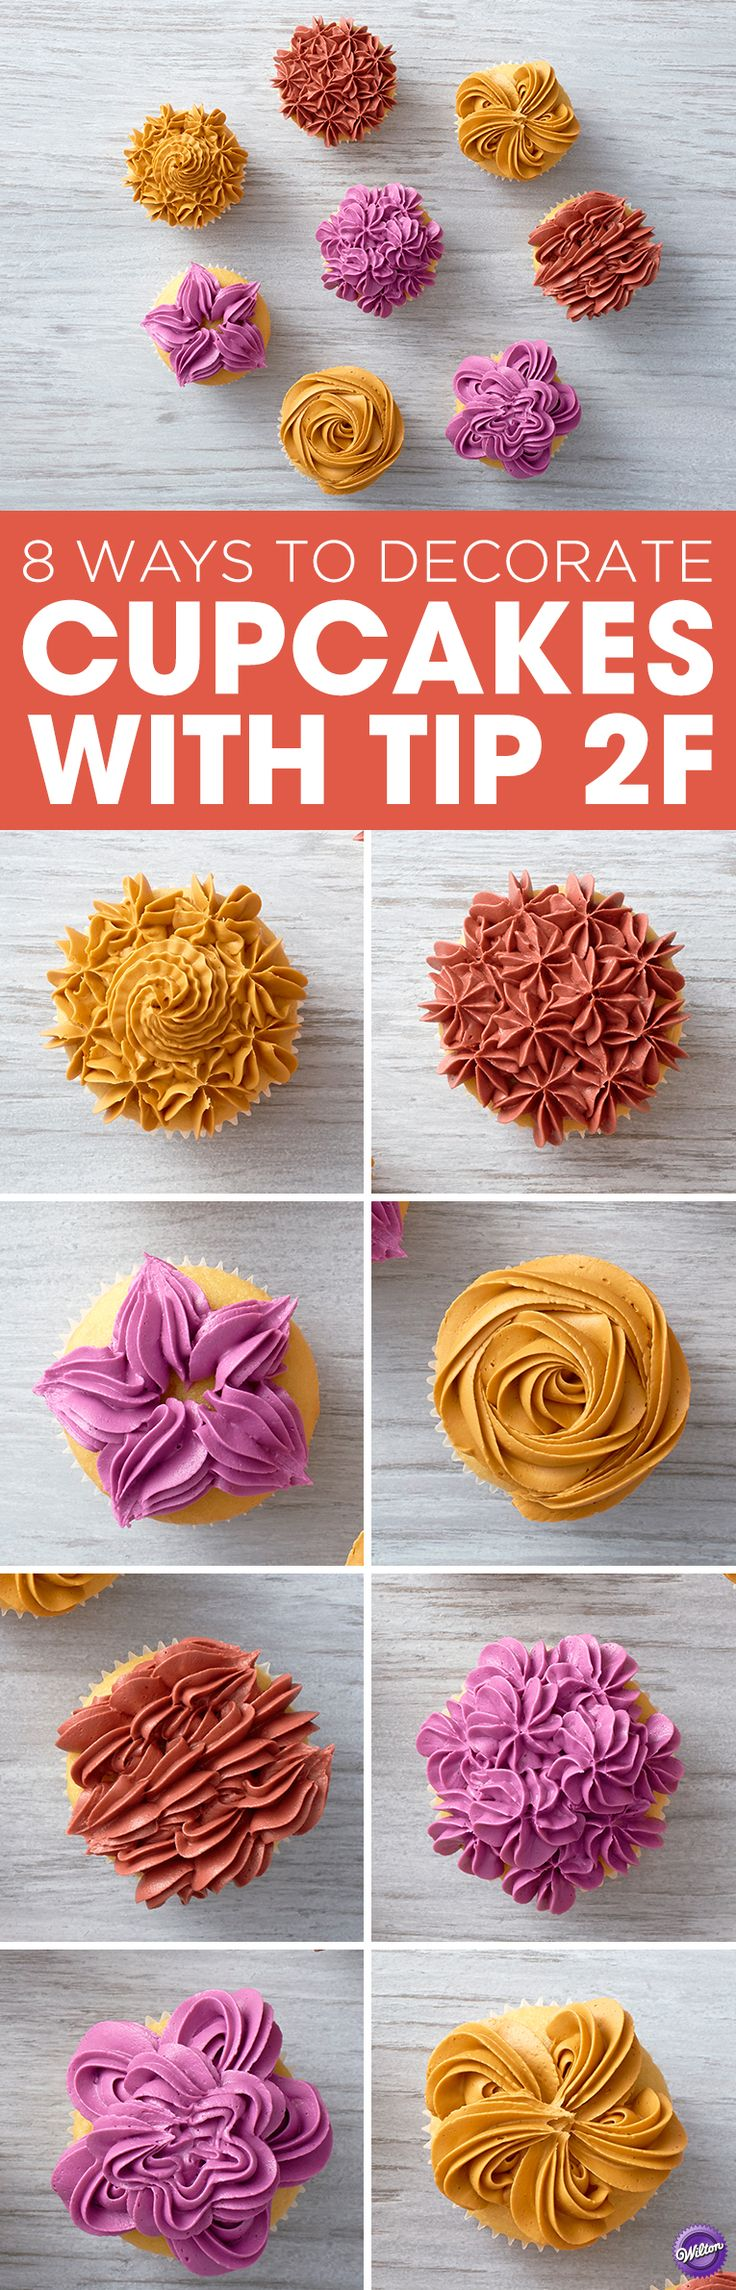 Learn 8 ways to decorate cupcakes using Wilton drop flower decorating tip 2F!